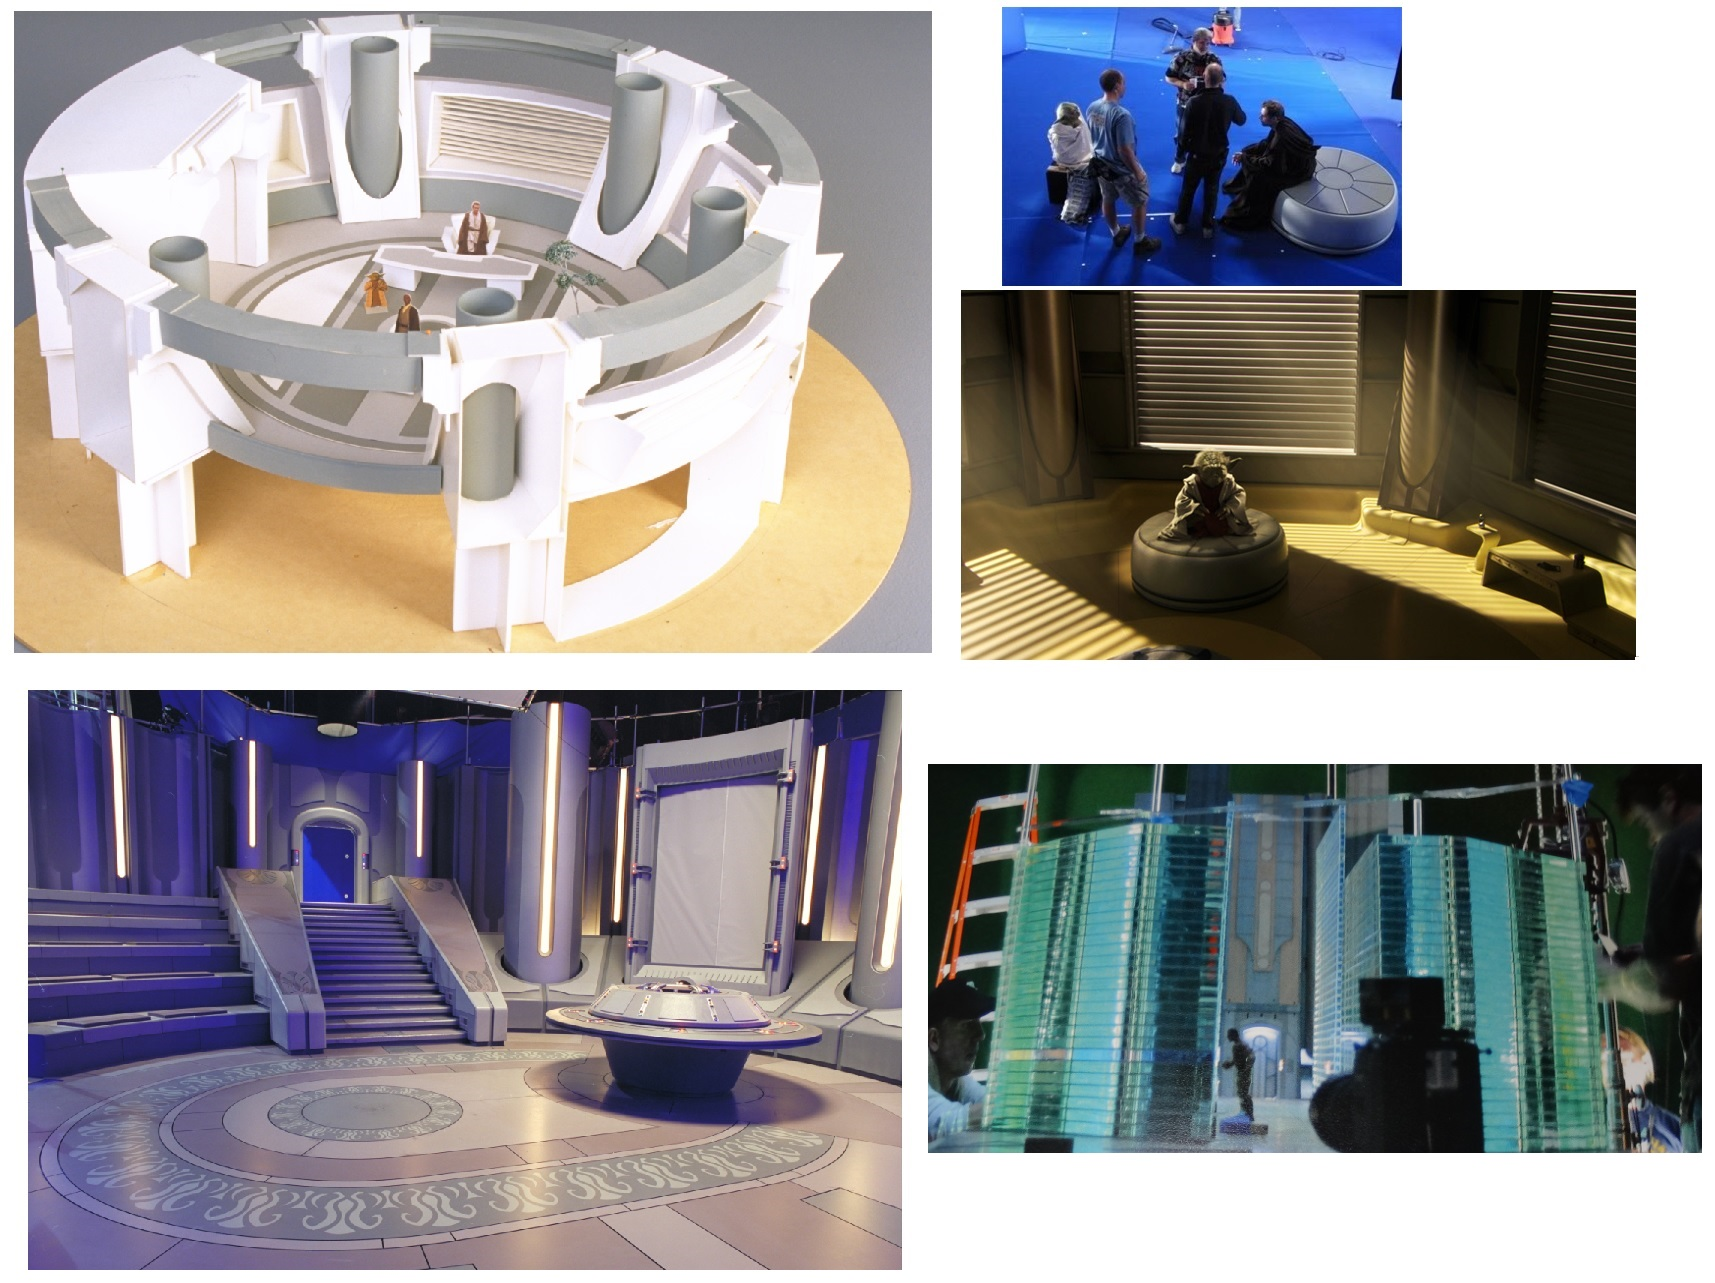 Top row: Mace's original office as a maquette & Yoda's room. Bottom row: War Room set & Circuit Room model